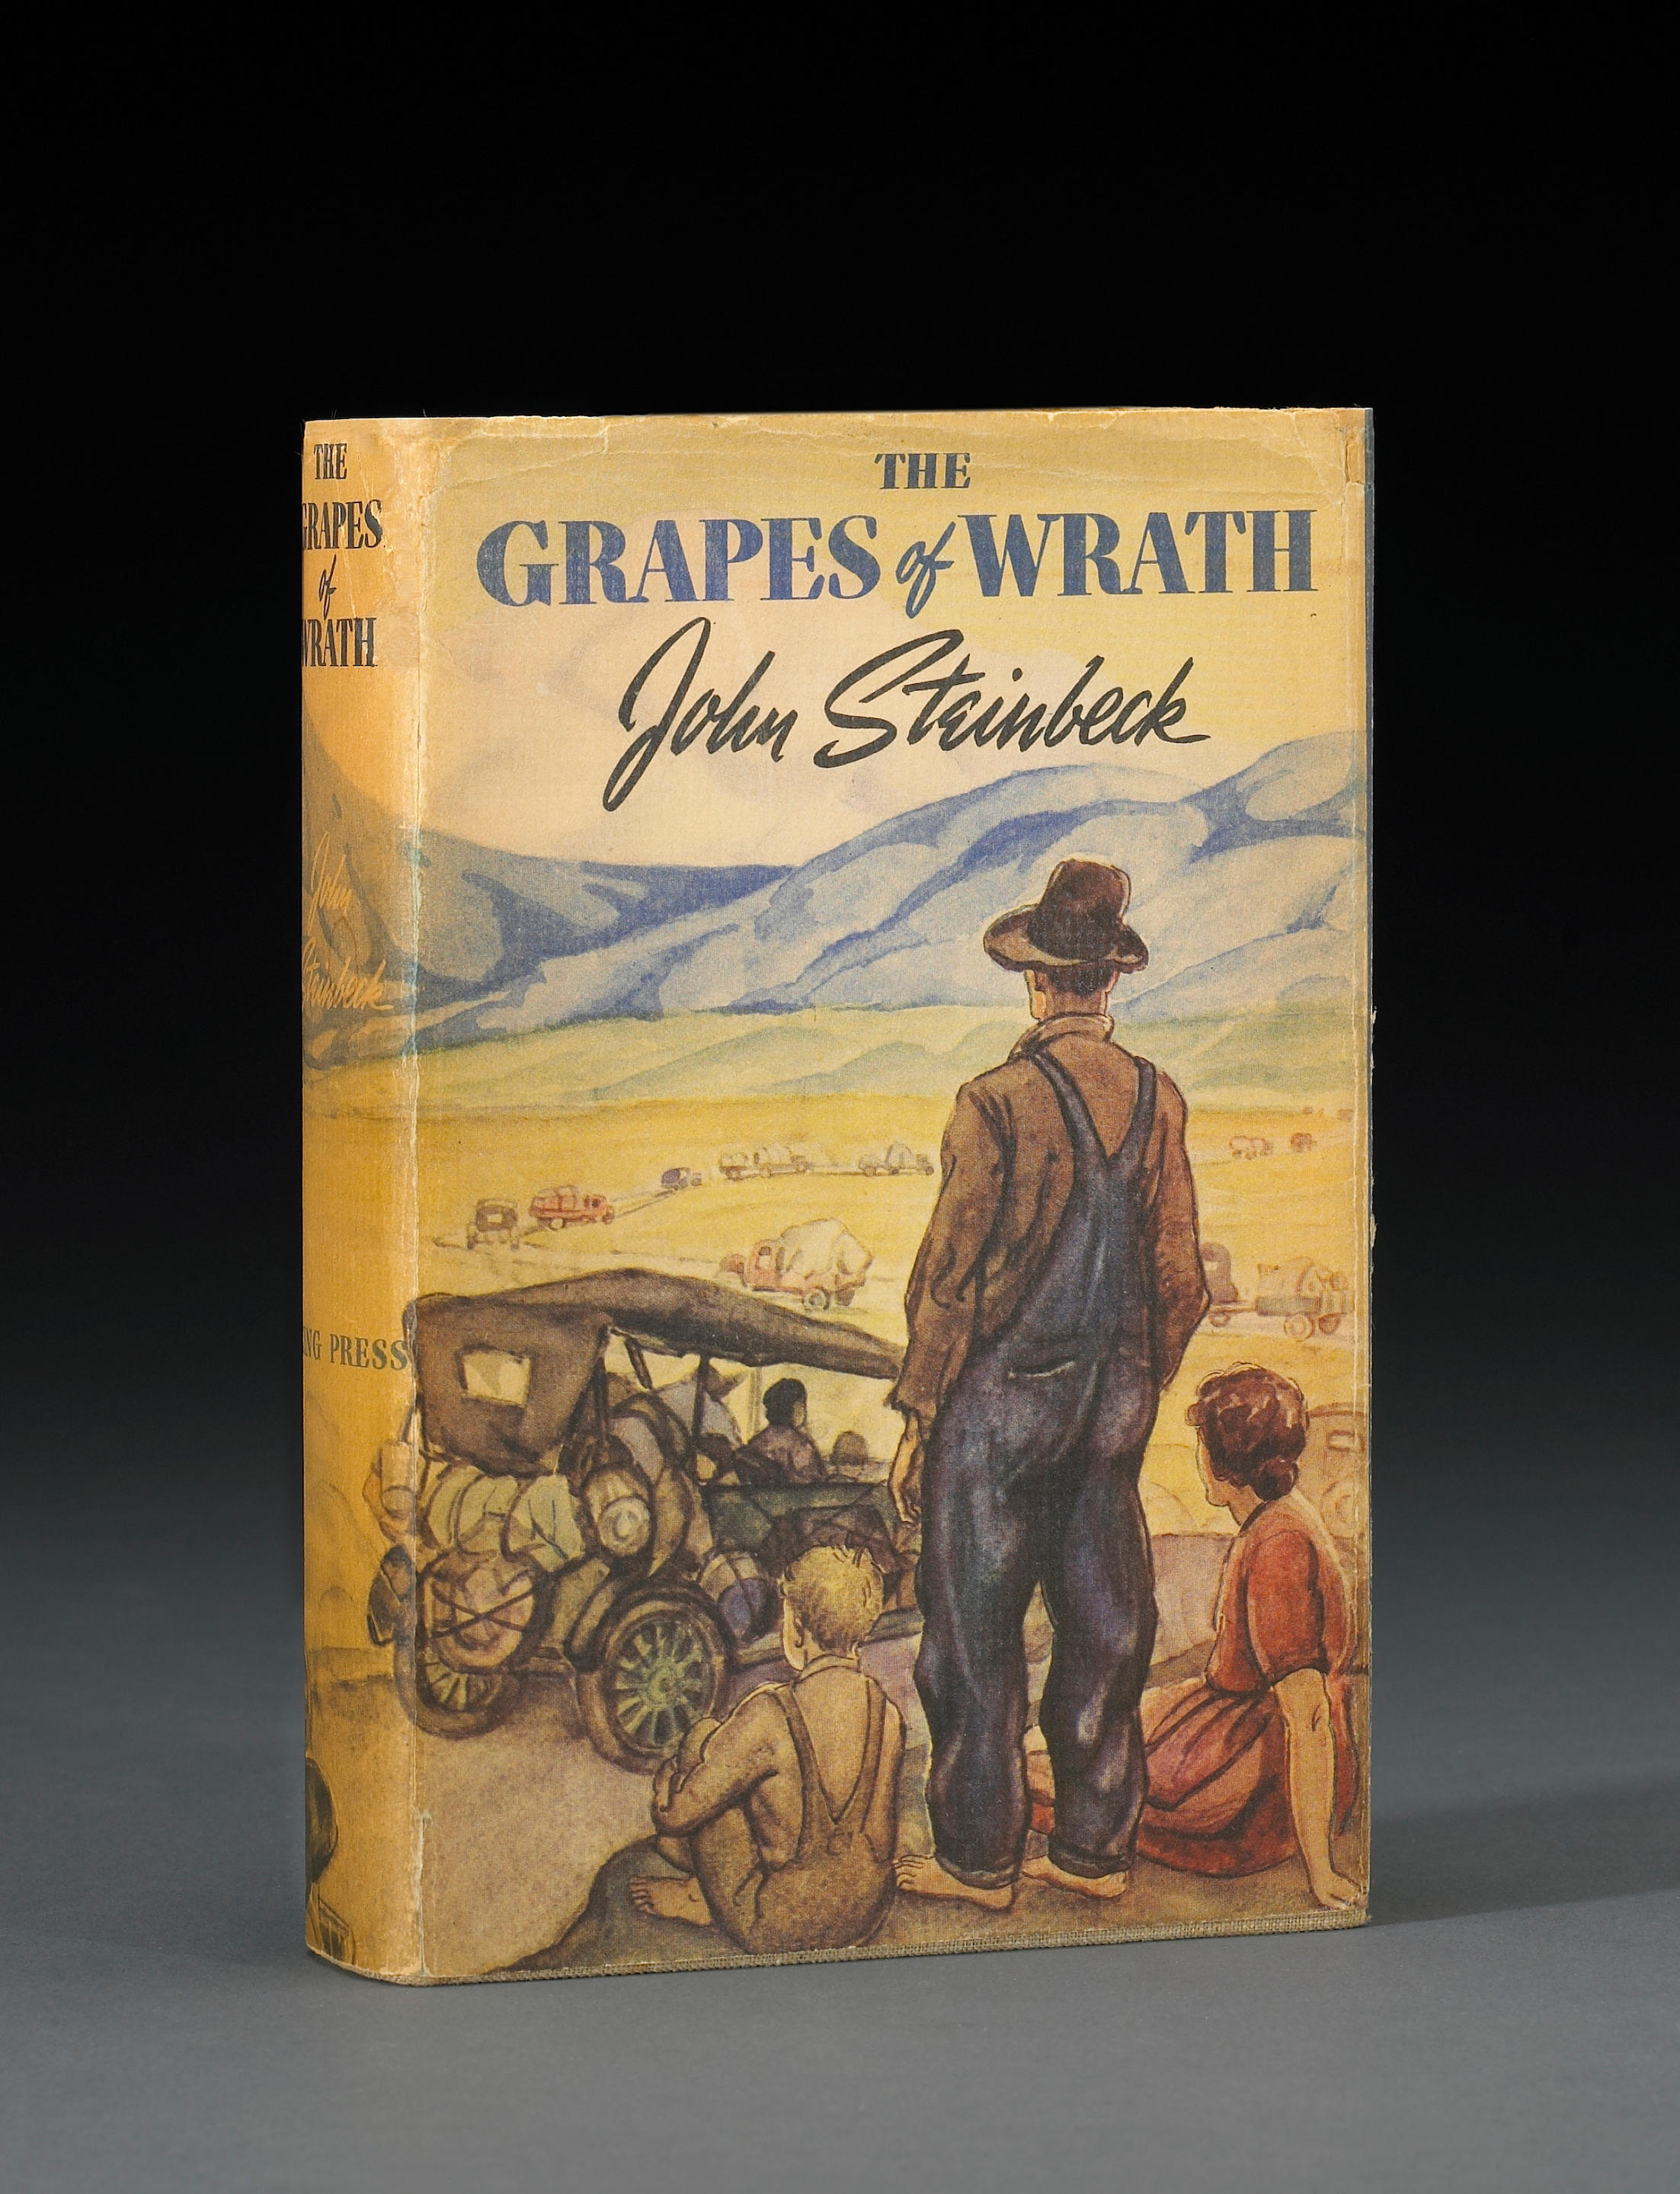 essay on the grapes of wrath Analyze tom joad's growth throughout the novel despite the fact that tom is not a young boy, does the novel have the characteristics of a bildungsroman, or coming-of-age story.